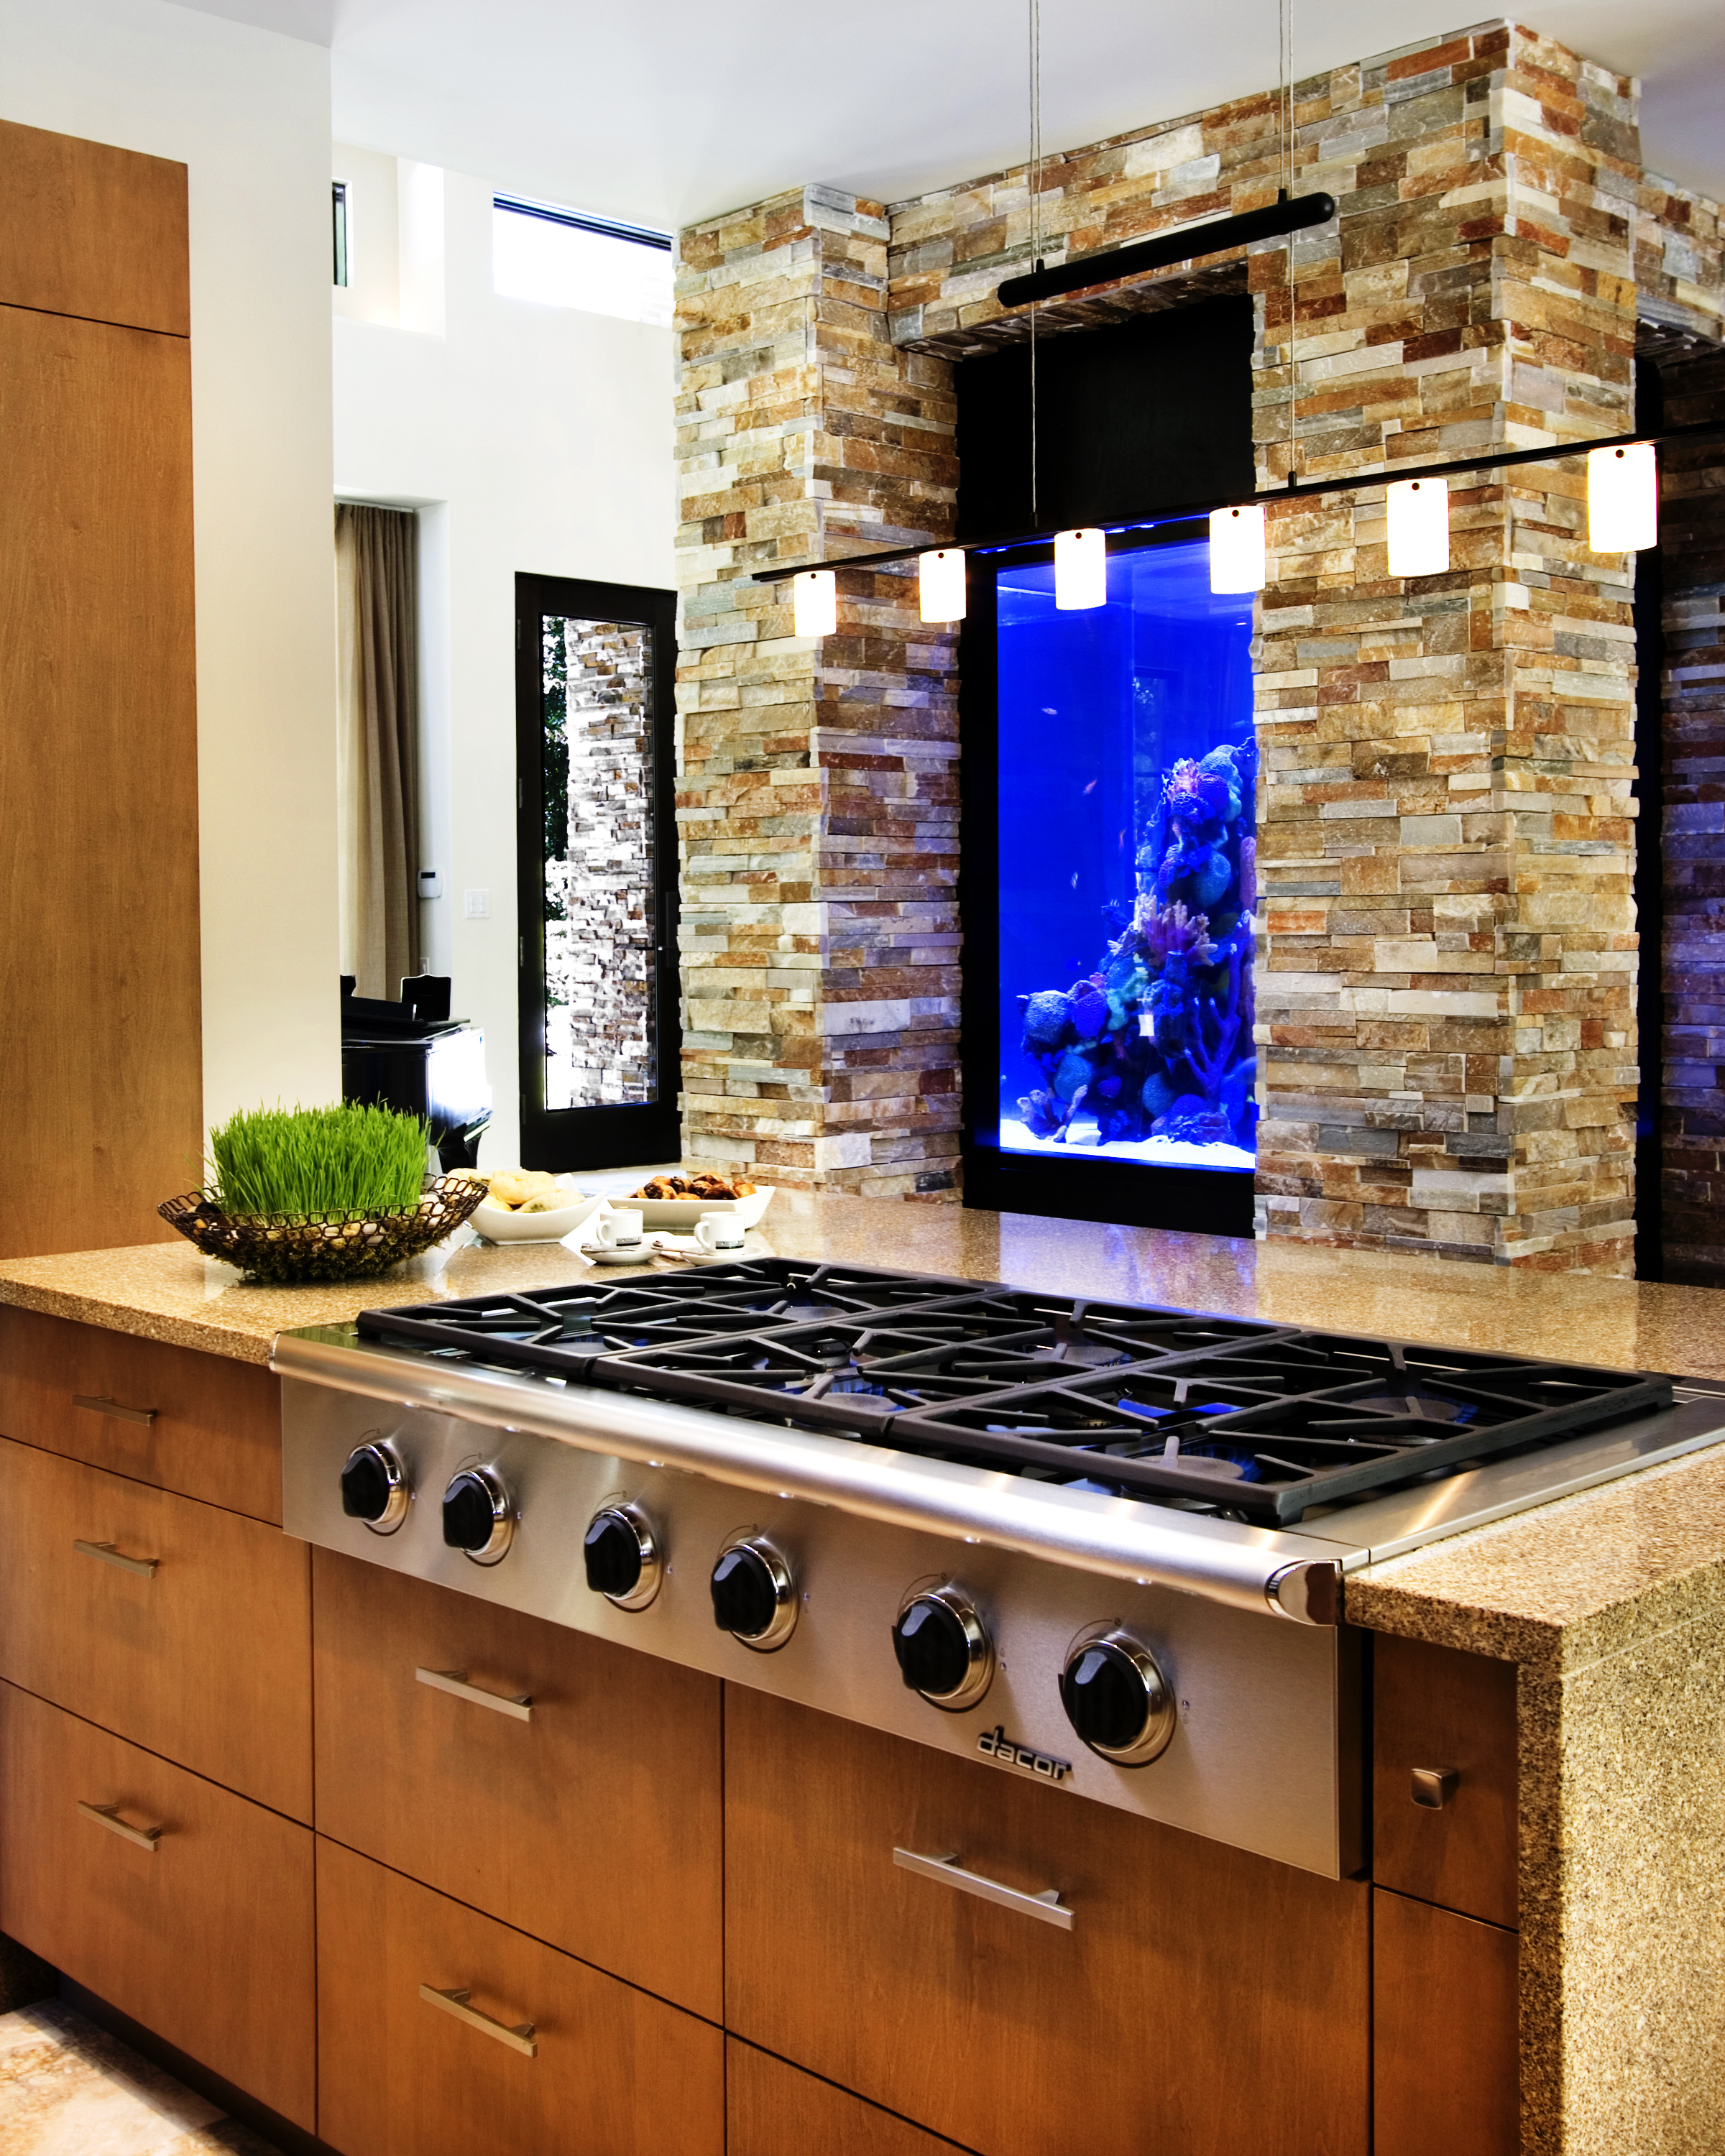 Feng Shui Kitchen Paint Colors Pictures Ideas From Hgtv: Kitchen Placement, The Art Of Feng Shui.